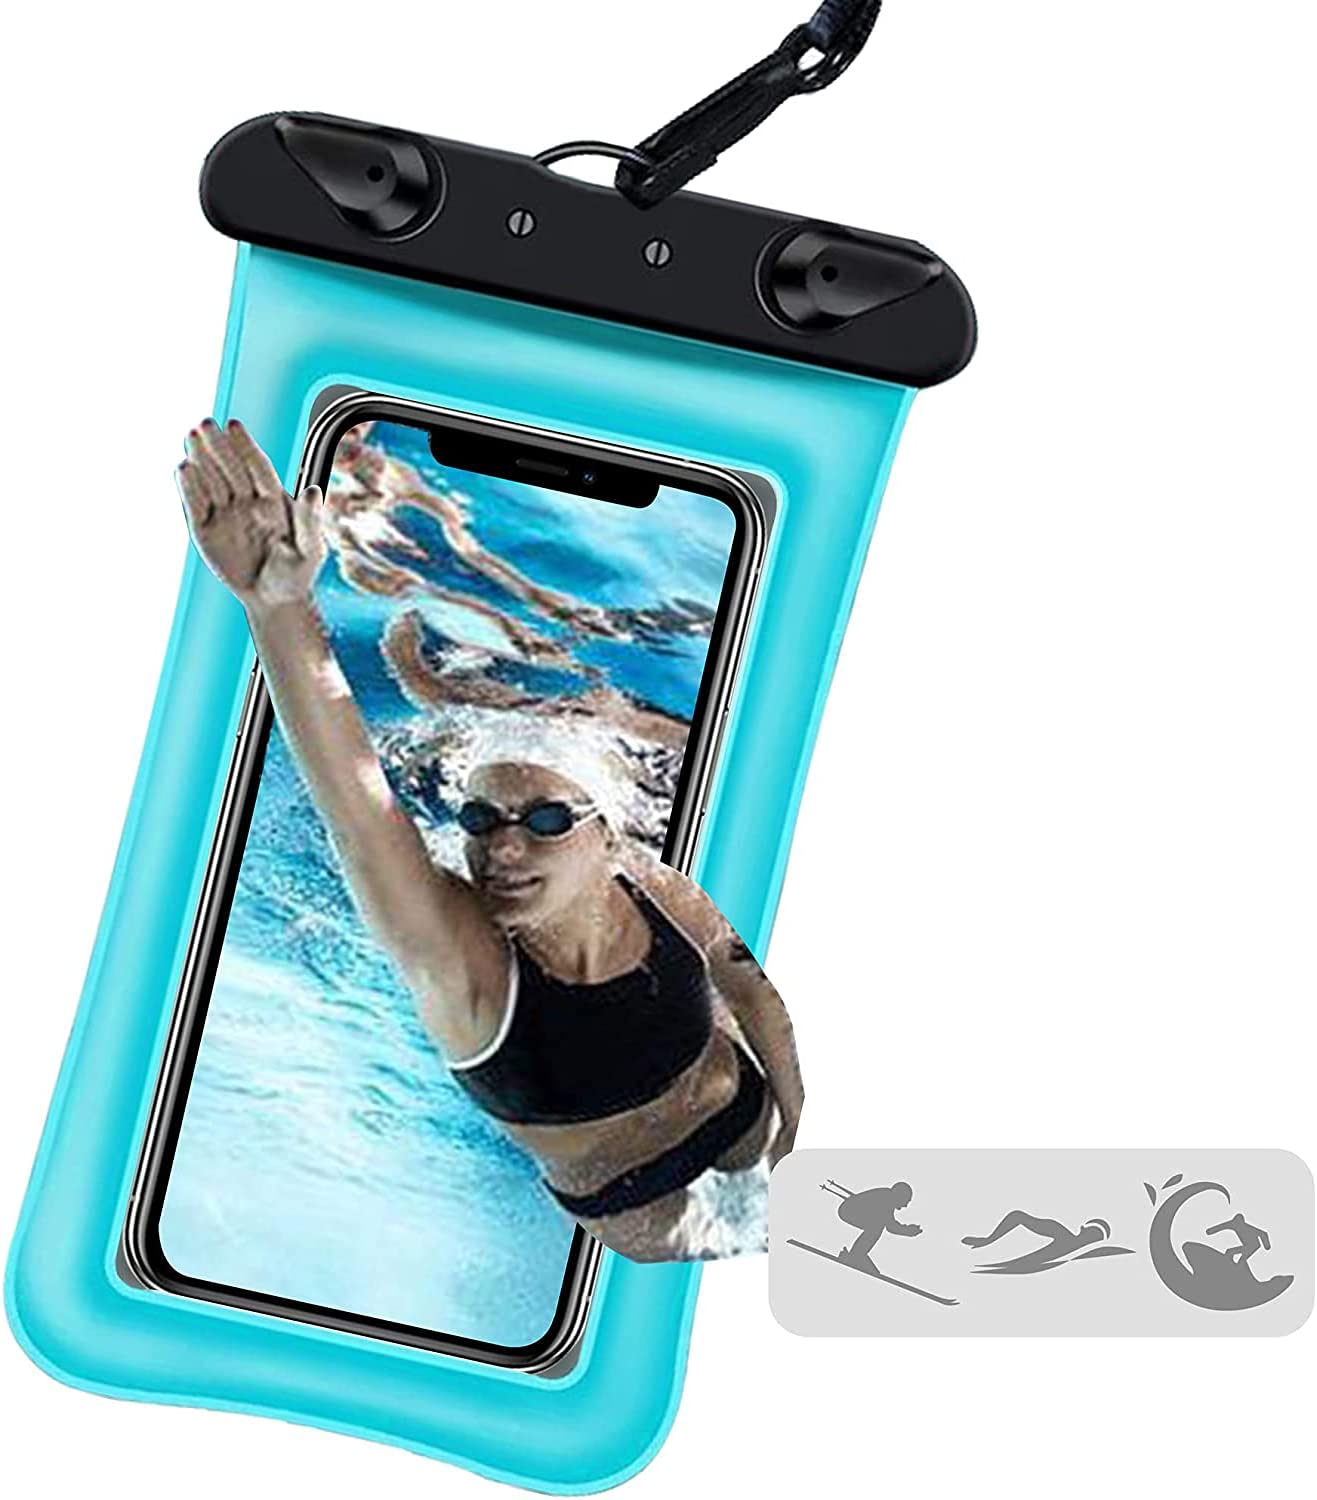 Jmart Floating Waterproof Phone Pouch Holder Dry Bag Case for Samsung Galaxy S21 Ultra S20+ S10 S9 Note 20 A01 A11 A12 A32 A42 A52 A10e A20 A21 A51 A71 iPhone 12 Pro Max 11 XS XR 8 up to 7